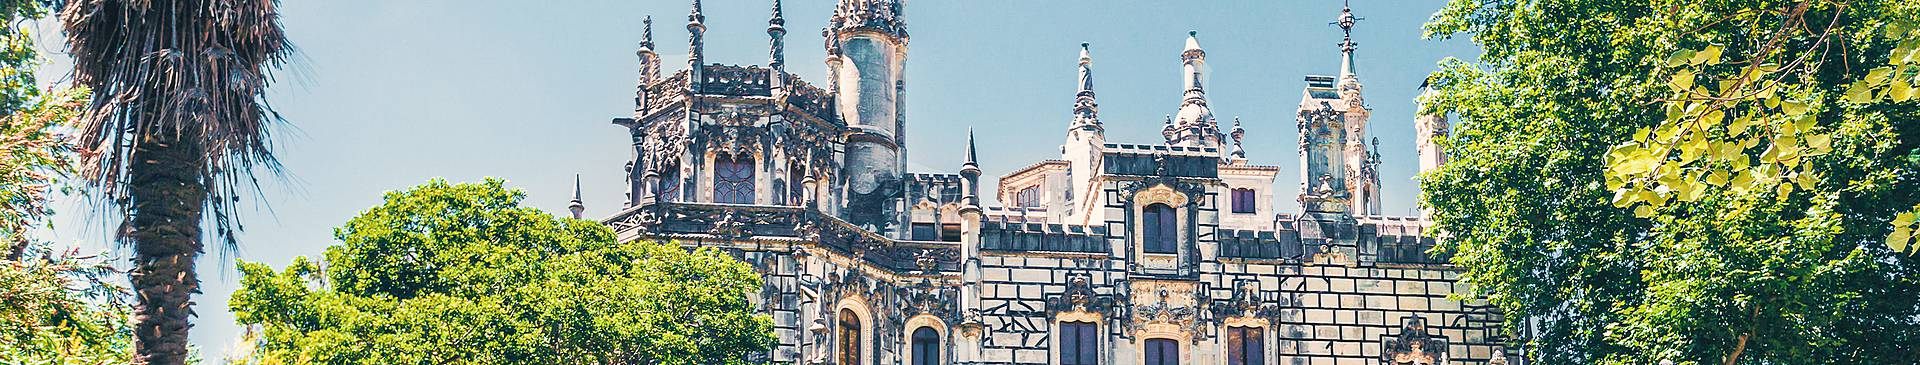 Historical sites in Portugal